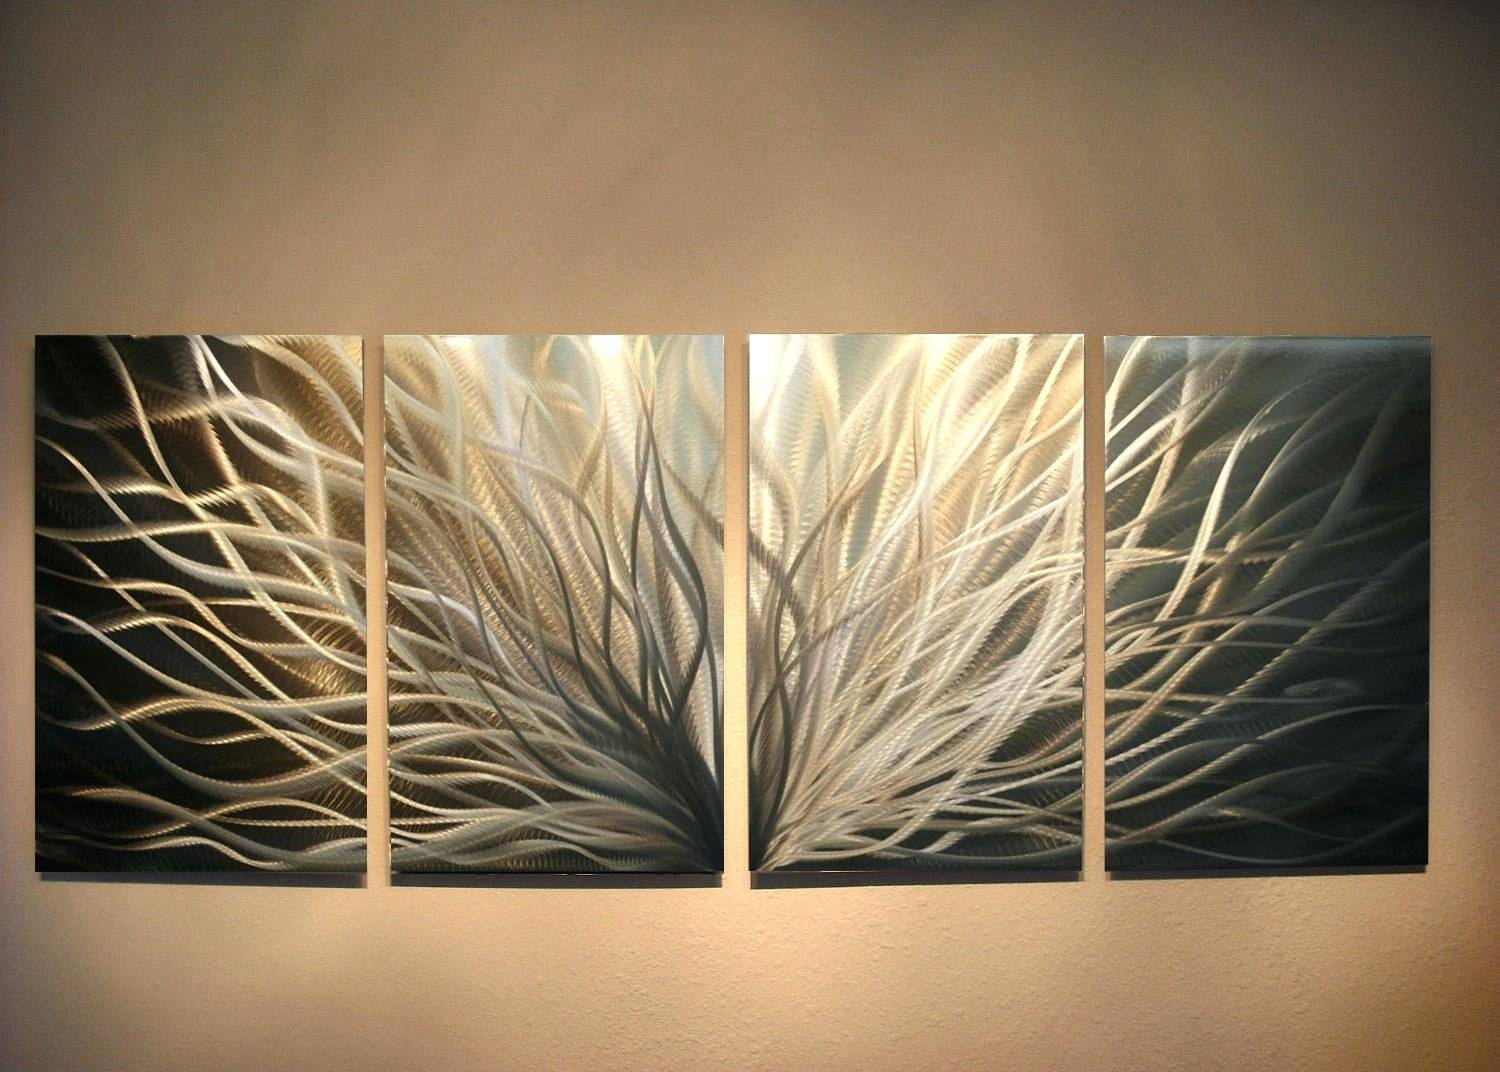 Wall Arts ~ Silver Metal Wall Art Next Silver Metal Wall Art Throughout Newest Silver Metal Wall Art Flowers (View 19 of 20)